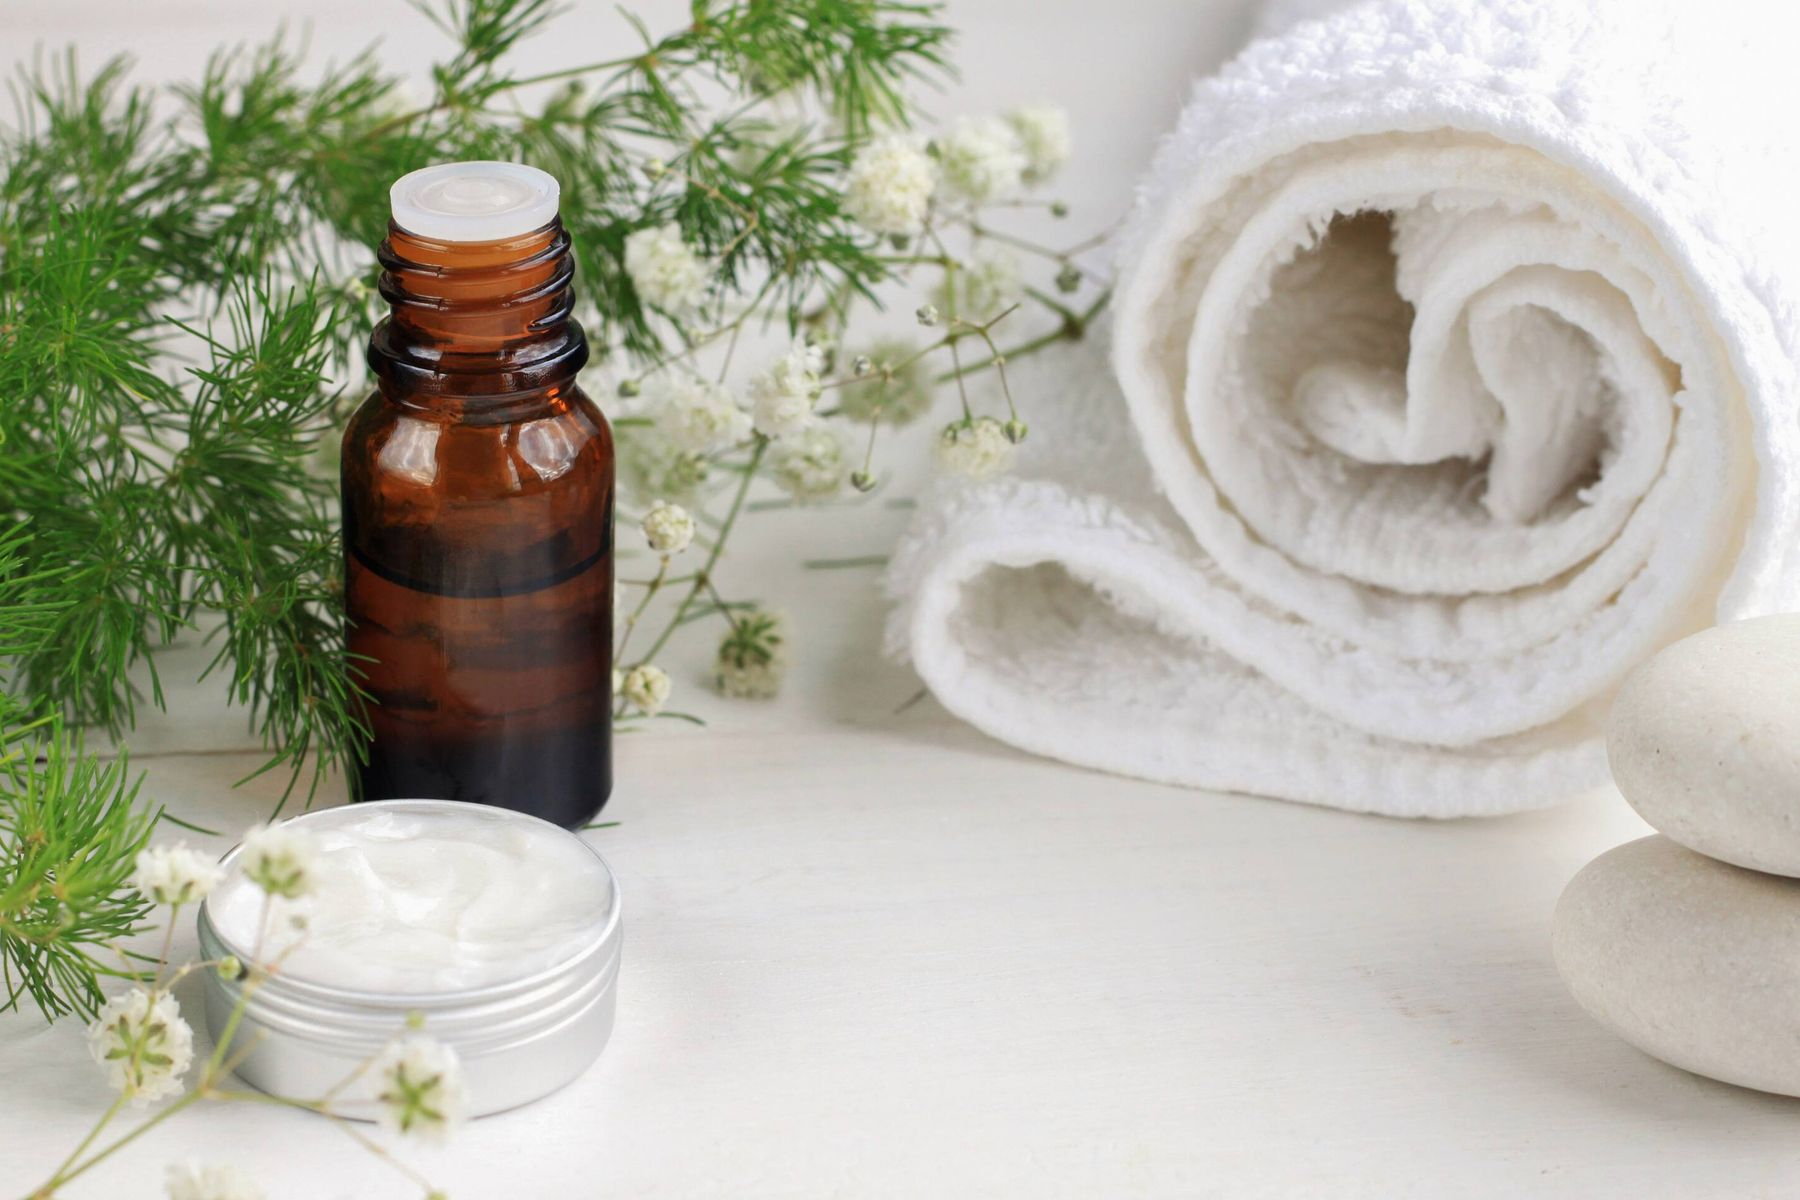 How to Make an Air Freshener So Your Bathroom Smells Great!